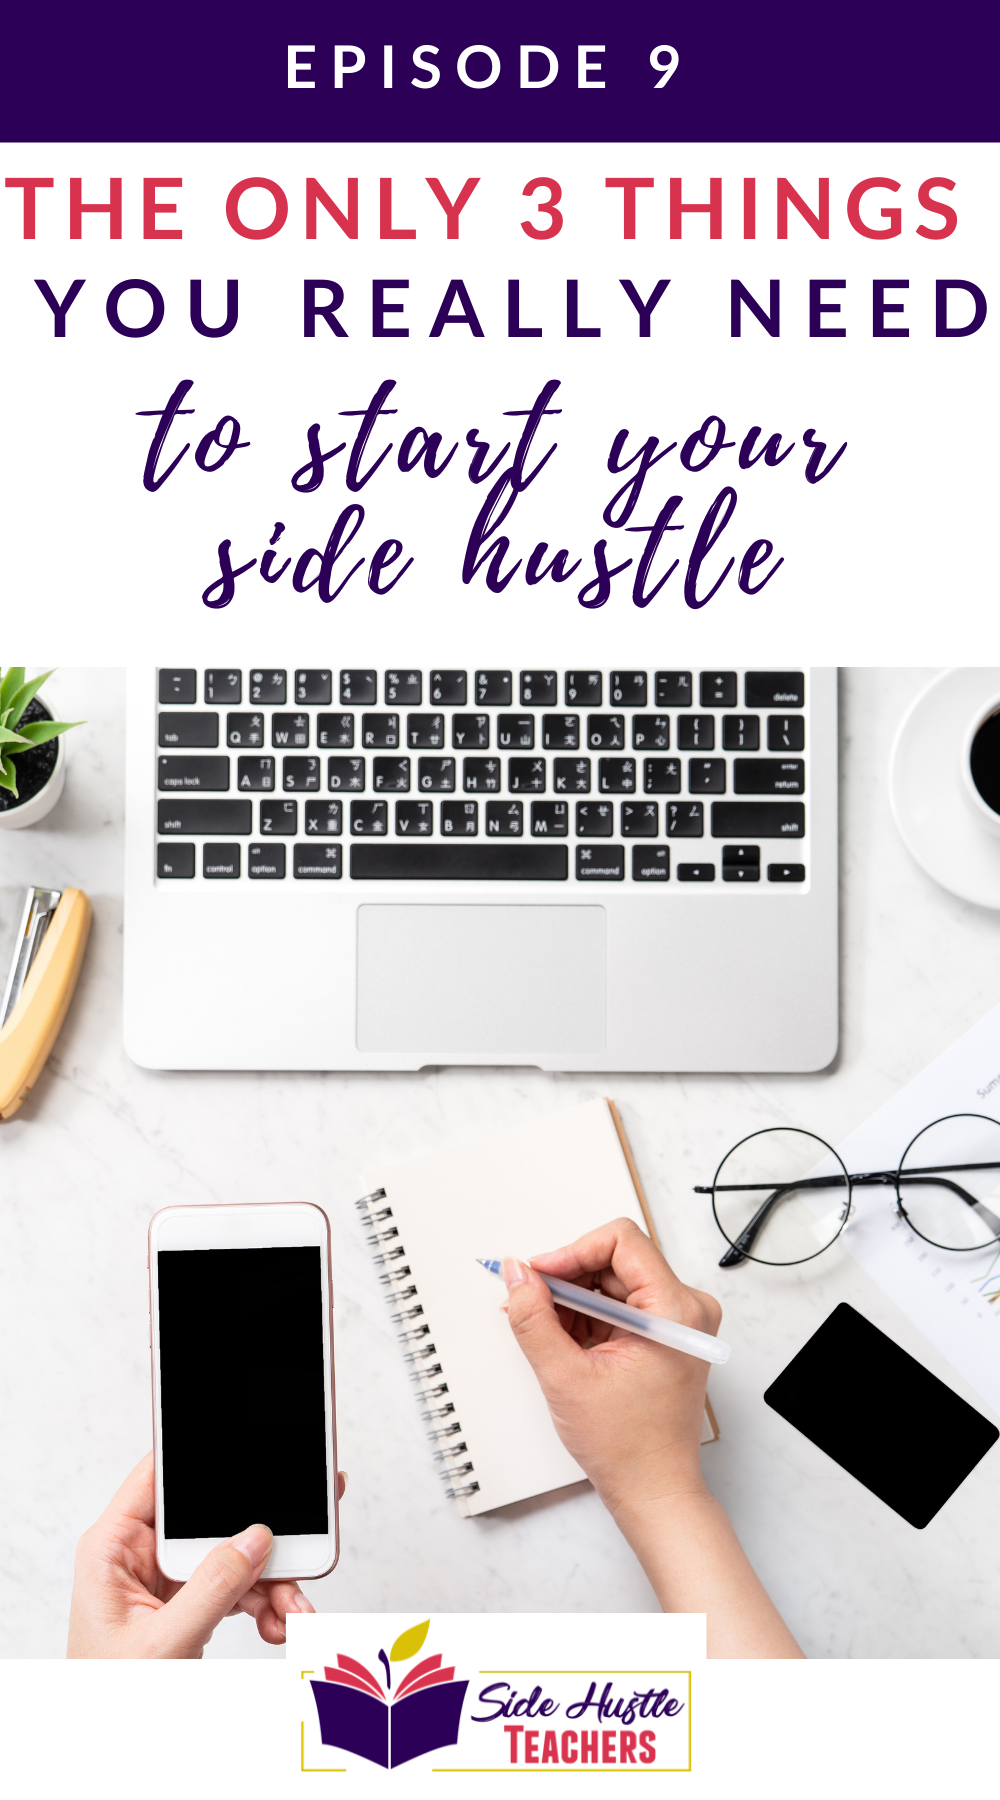 The Only 3 Things You Really Need to Start A Side Hustle